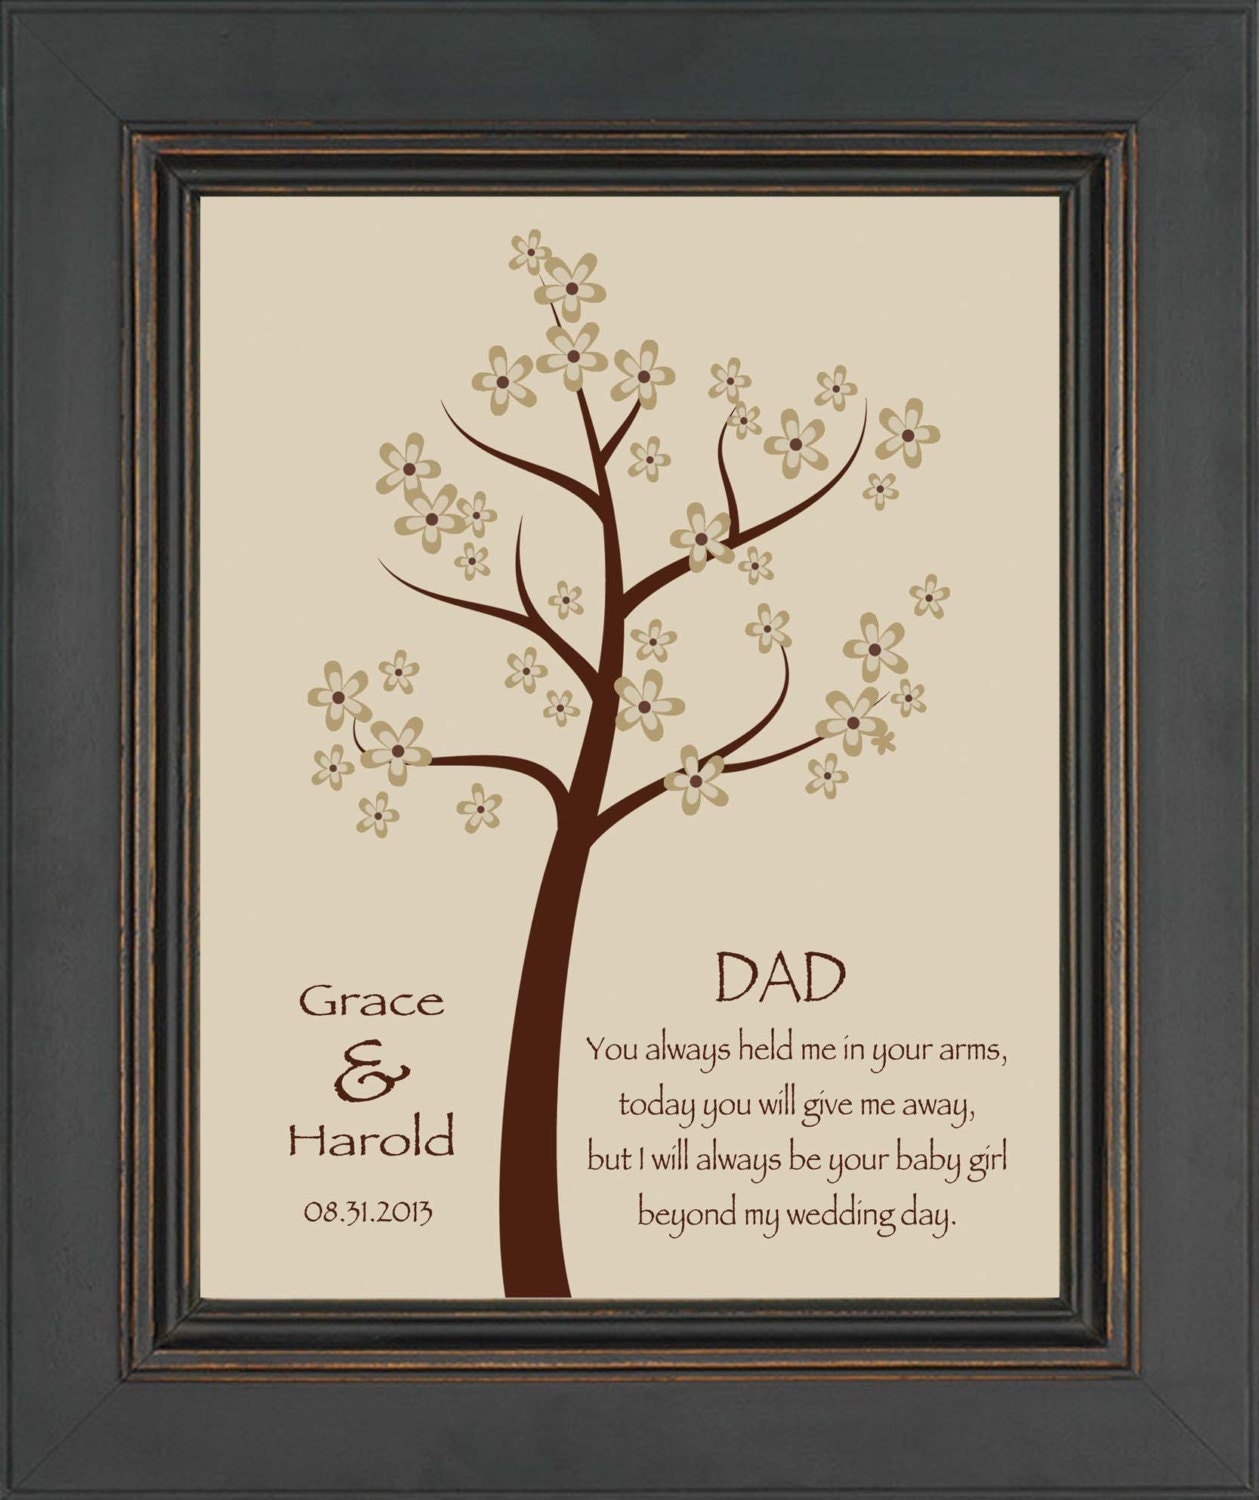 Wedding Gift For Your Dad : Wedding Gift for DAD from Bride Thank you gift for DAD on